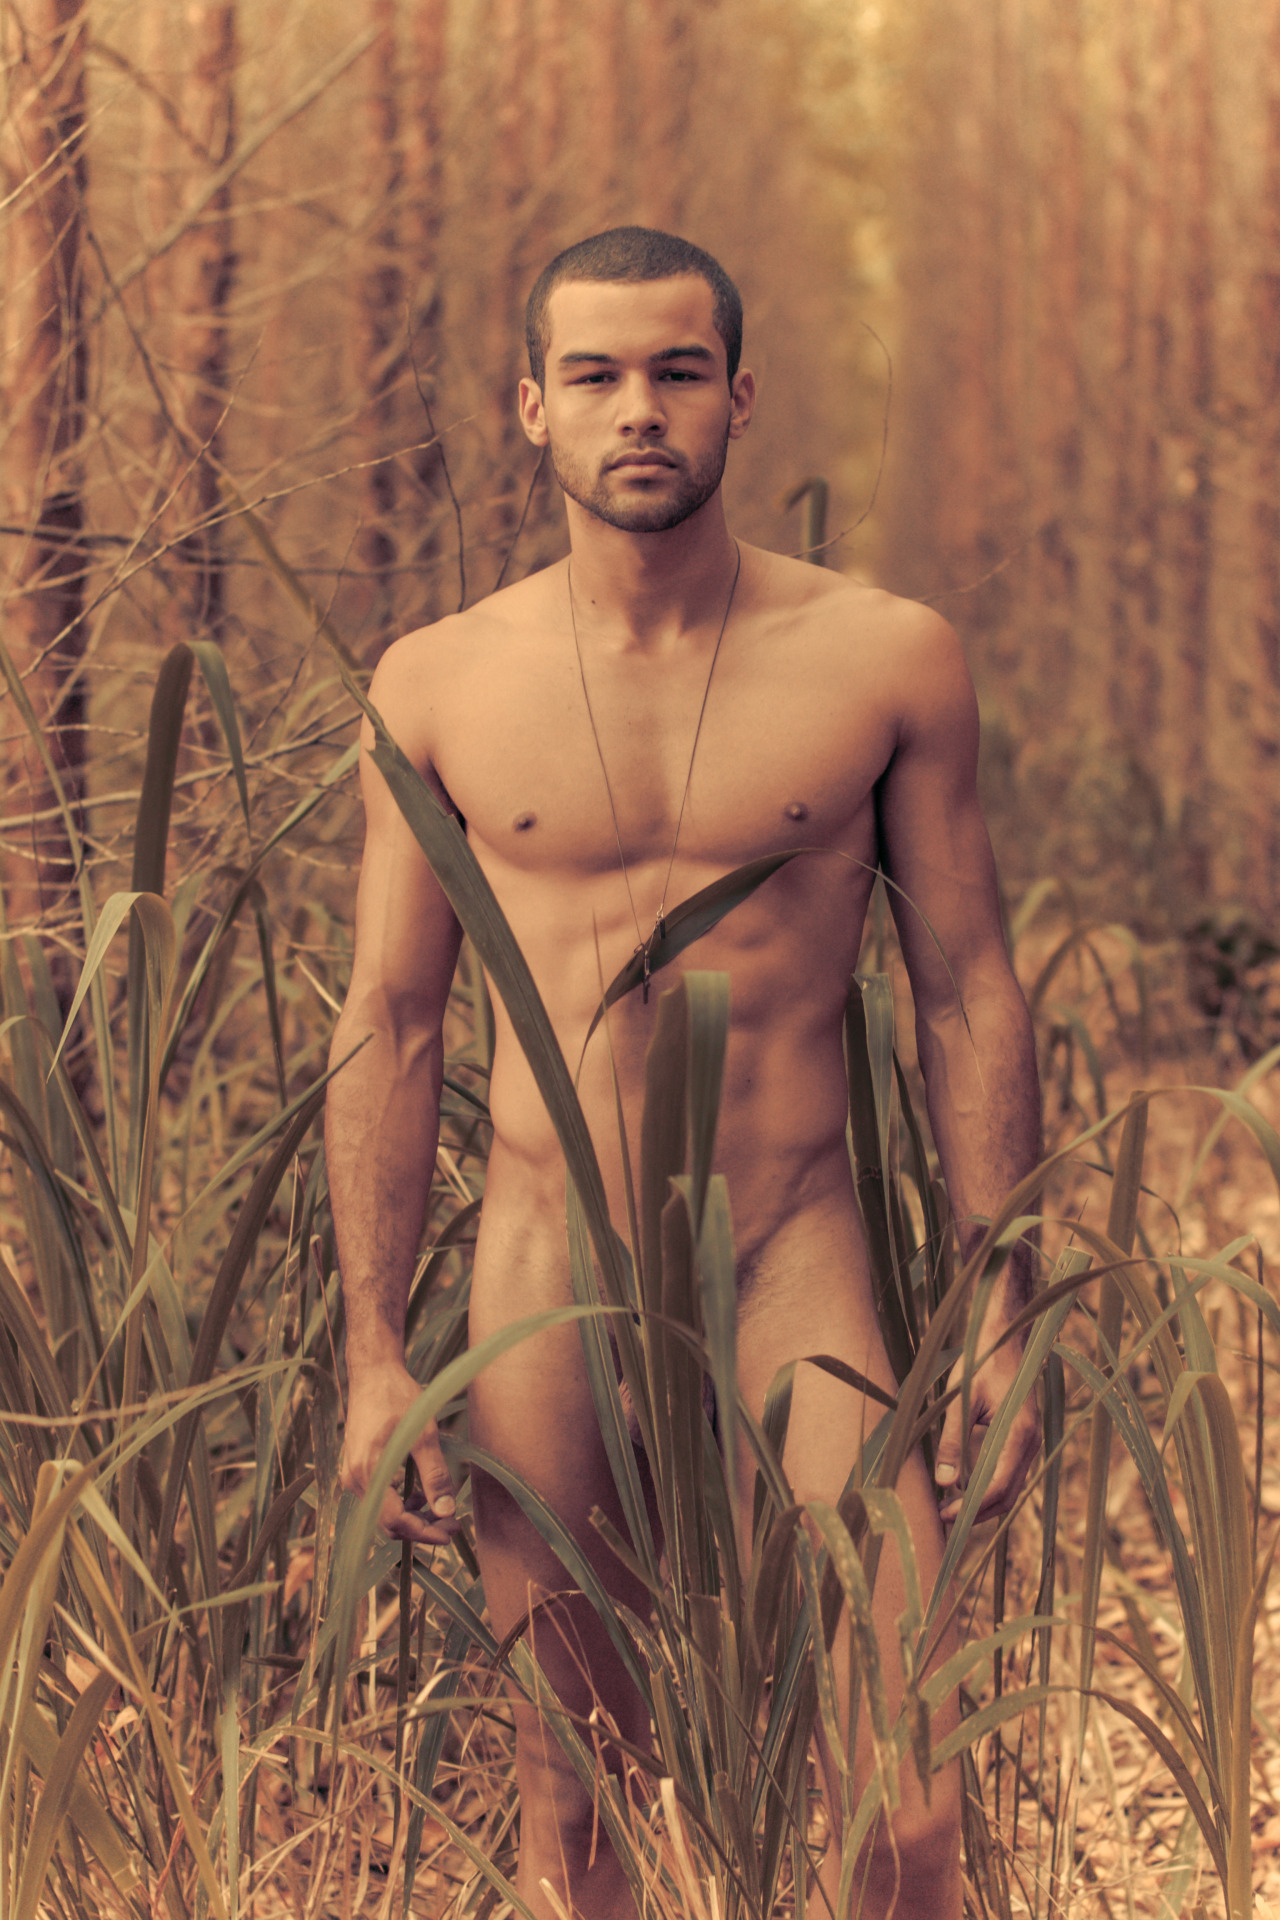 stunninglybeautifulmen:  Splendor in the Grass  - Sexy barefoot men - http://allaboutmensfeet.tumblr.com/  - hot assholes, mancunts, and boypussies - http://mancunts.tumblr.com/ - Black Master/ white slaves - http://blackrulephotoblog.tumblr.com/  - What turns this Black Dom on - http://wetdreamoblackdom.tumblr.com/  - Sexy guys being dominated - http://dominatehim.tumblr.com/  - Men who I find beautiful - http://stunninglybeautifulmen.tumblr.com/